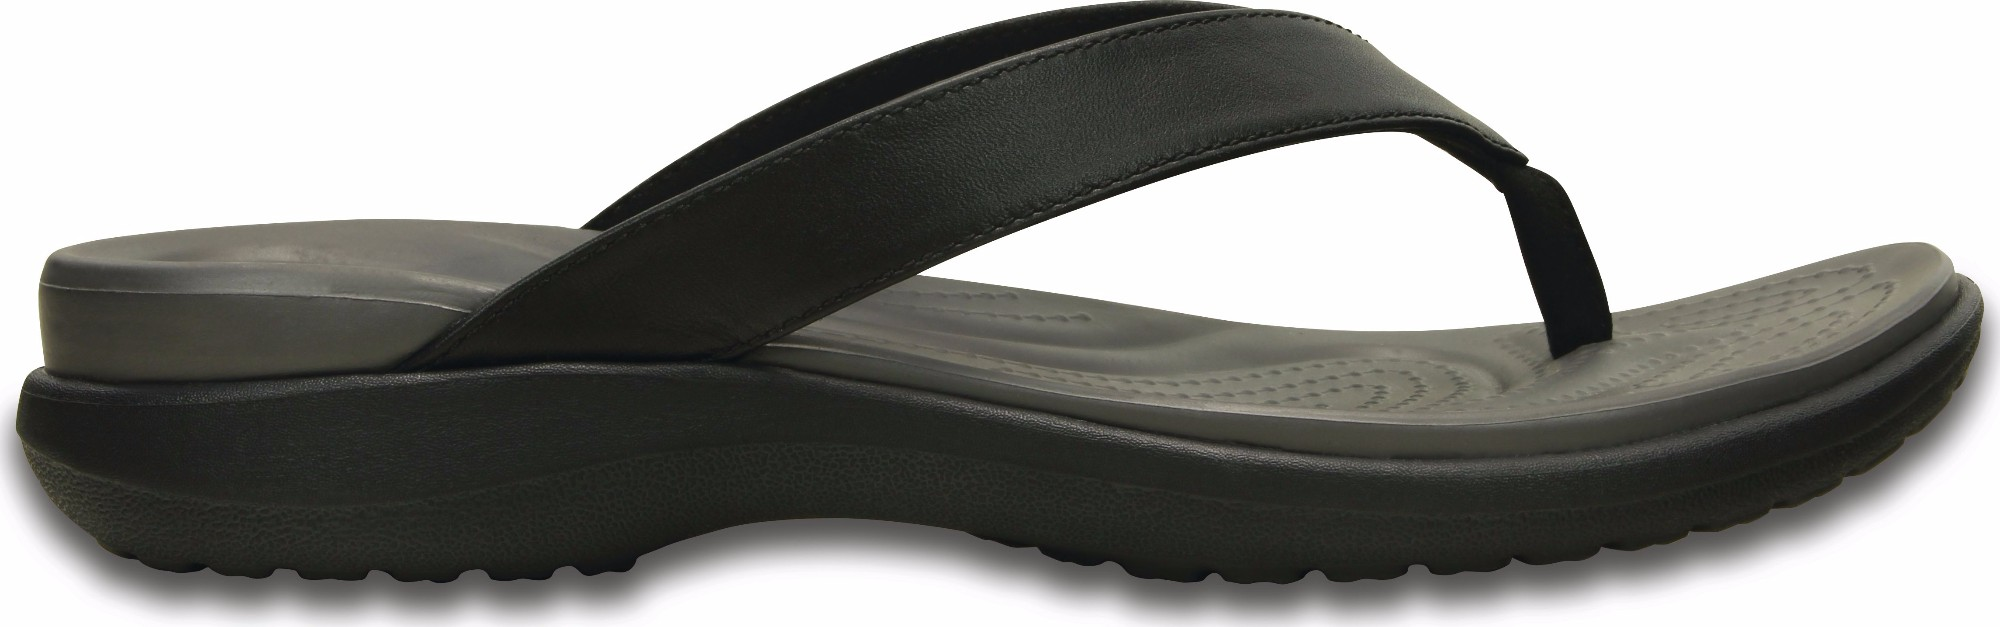 Crocs™ Capri V Flip Black/Graphite 41